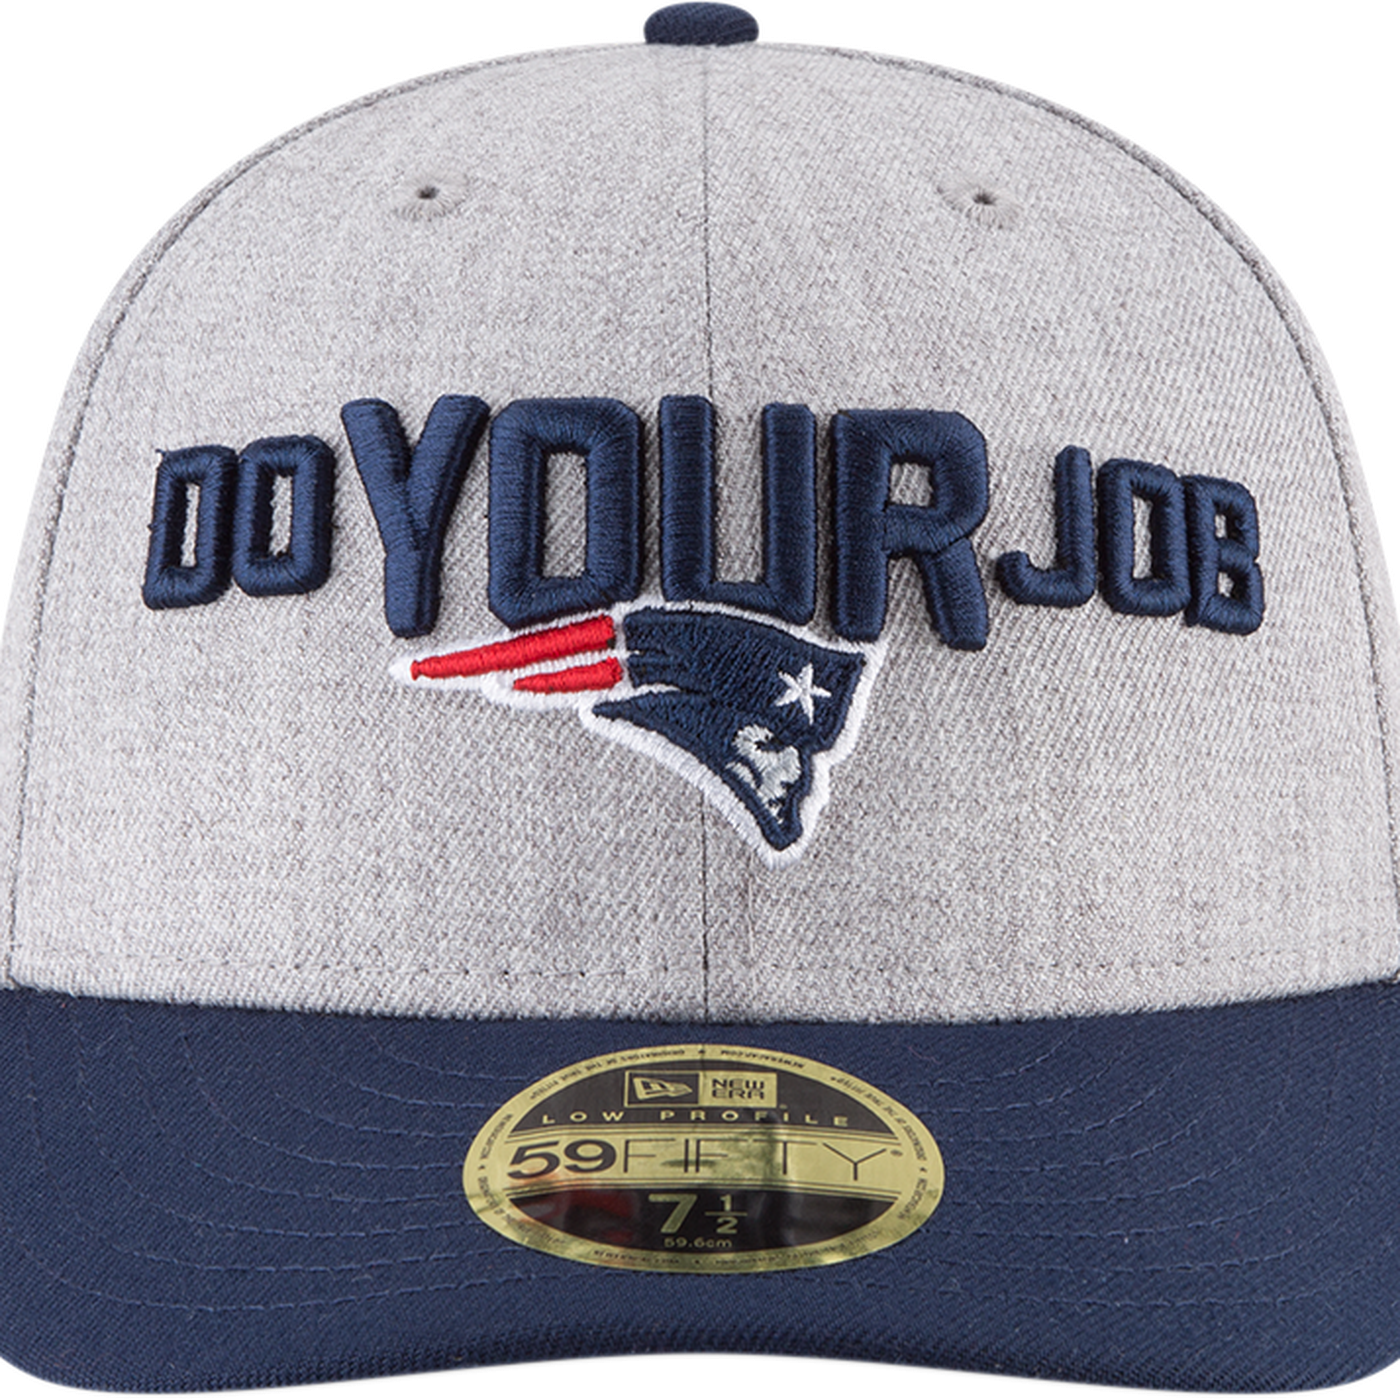 Nfl team hats png. Draft fixing the worst